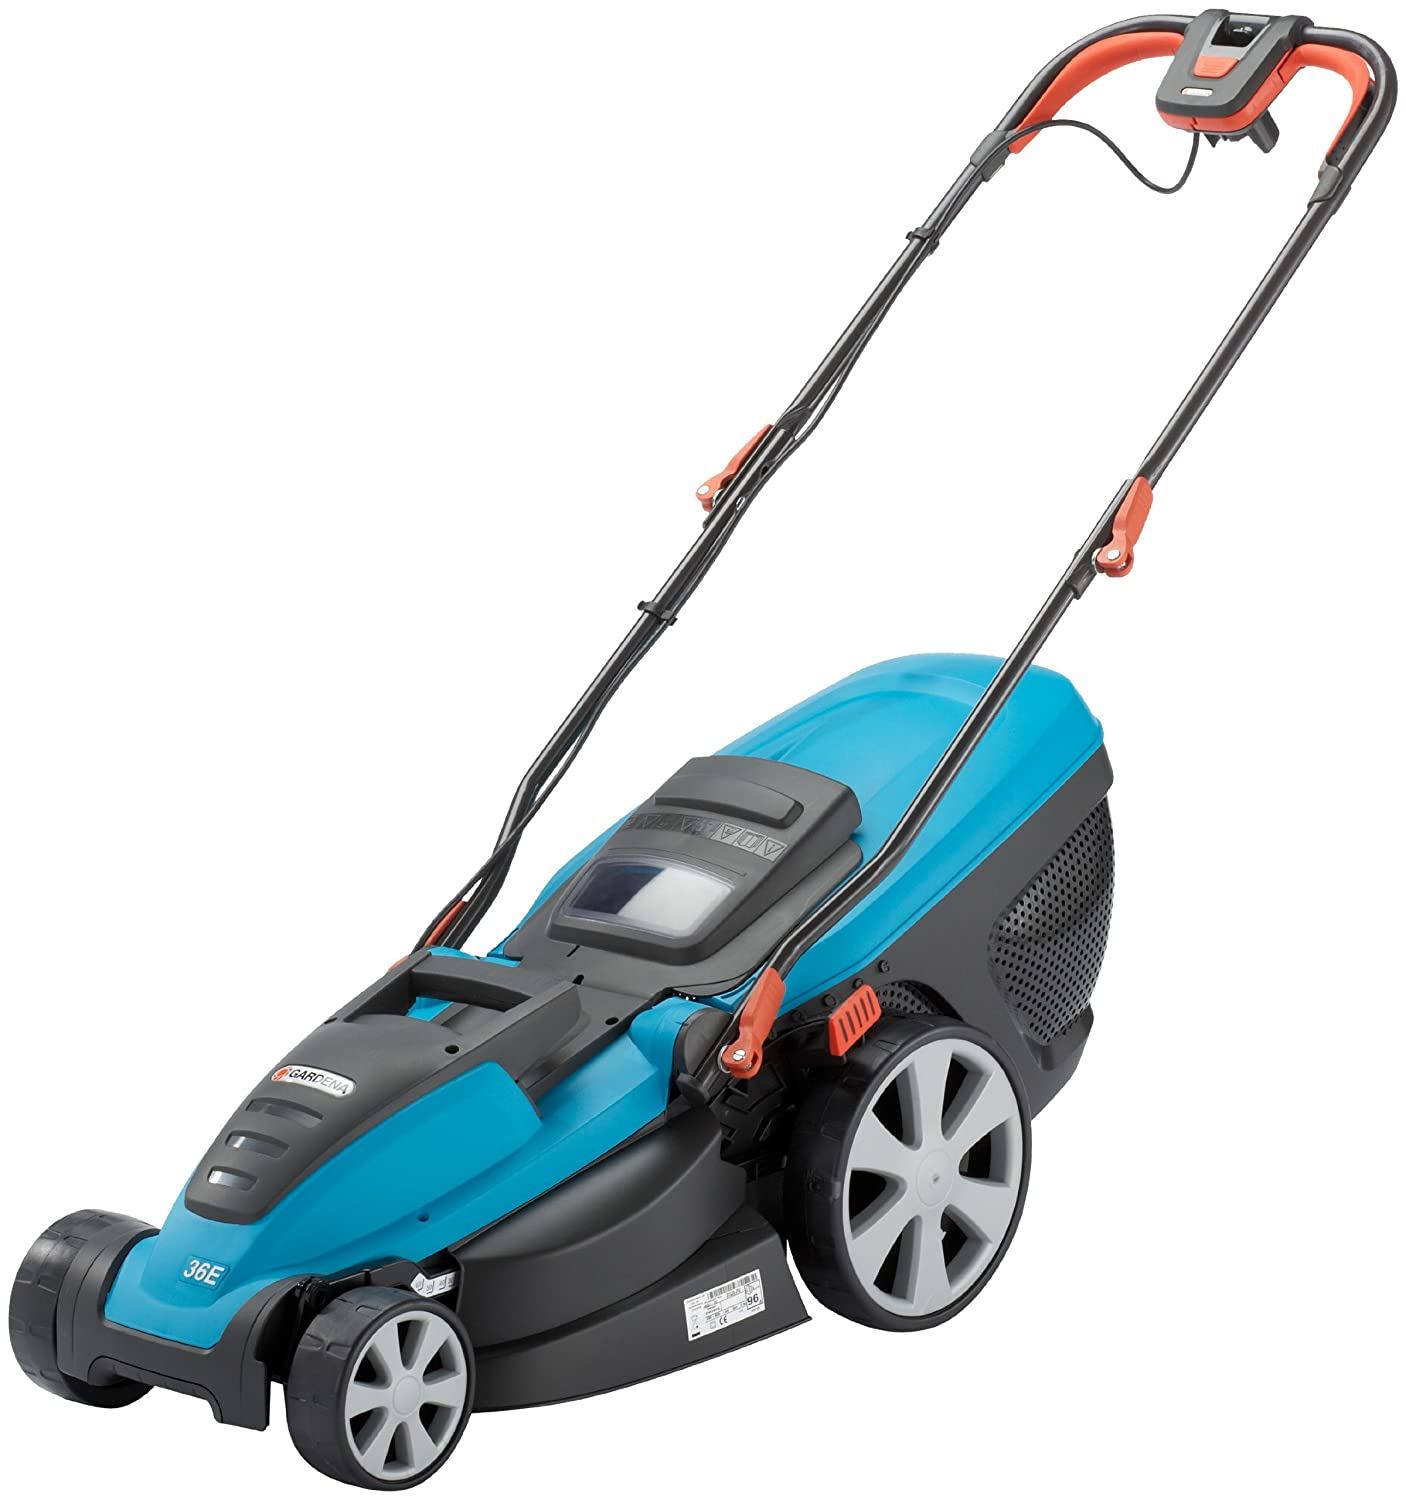 GARDENA 4037 Power Max 36E Electric Lawnmower, Turquoise/Orange/Black FL4037-28